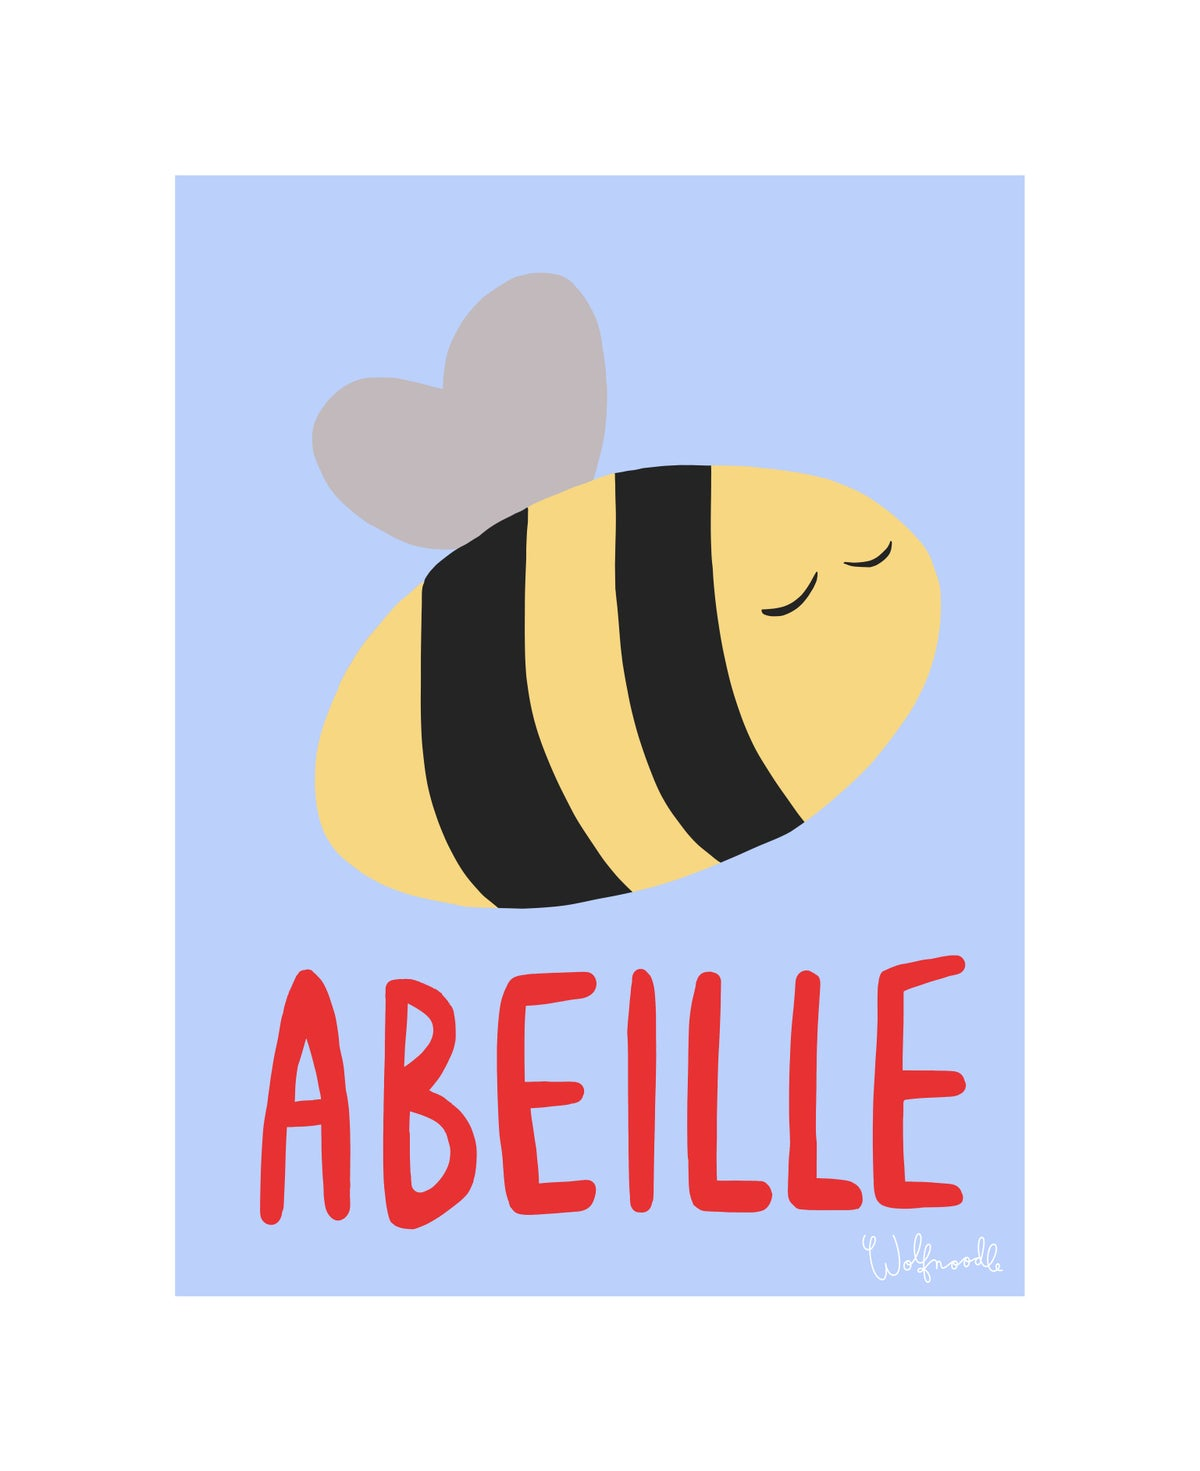 Image of ABEILLE